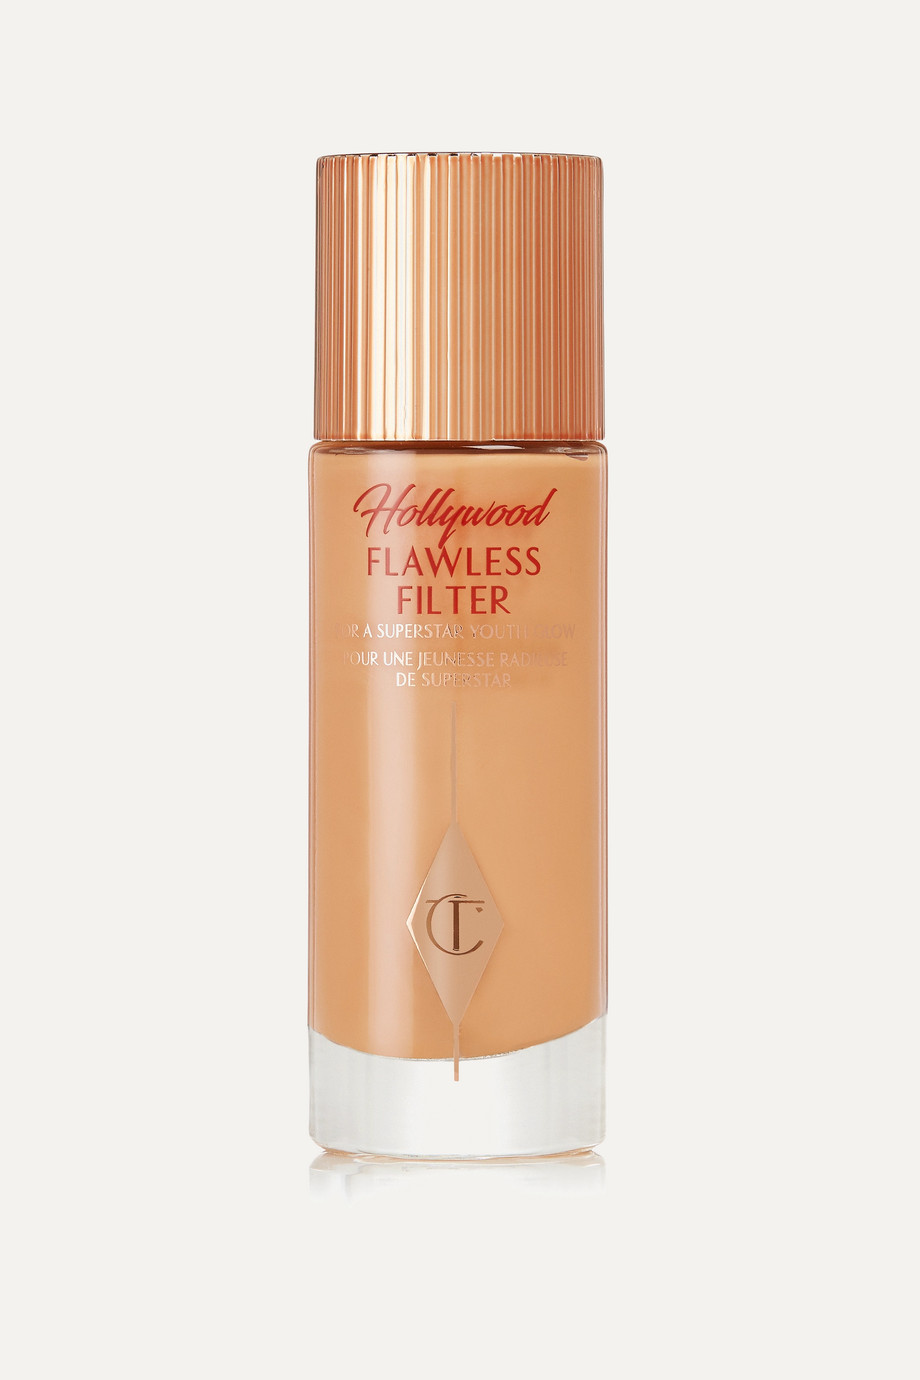 Charlotte Tilbury Hollywood Flawless Filter - 5 Tan, 30ml